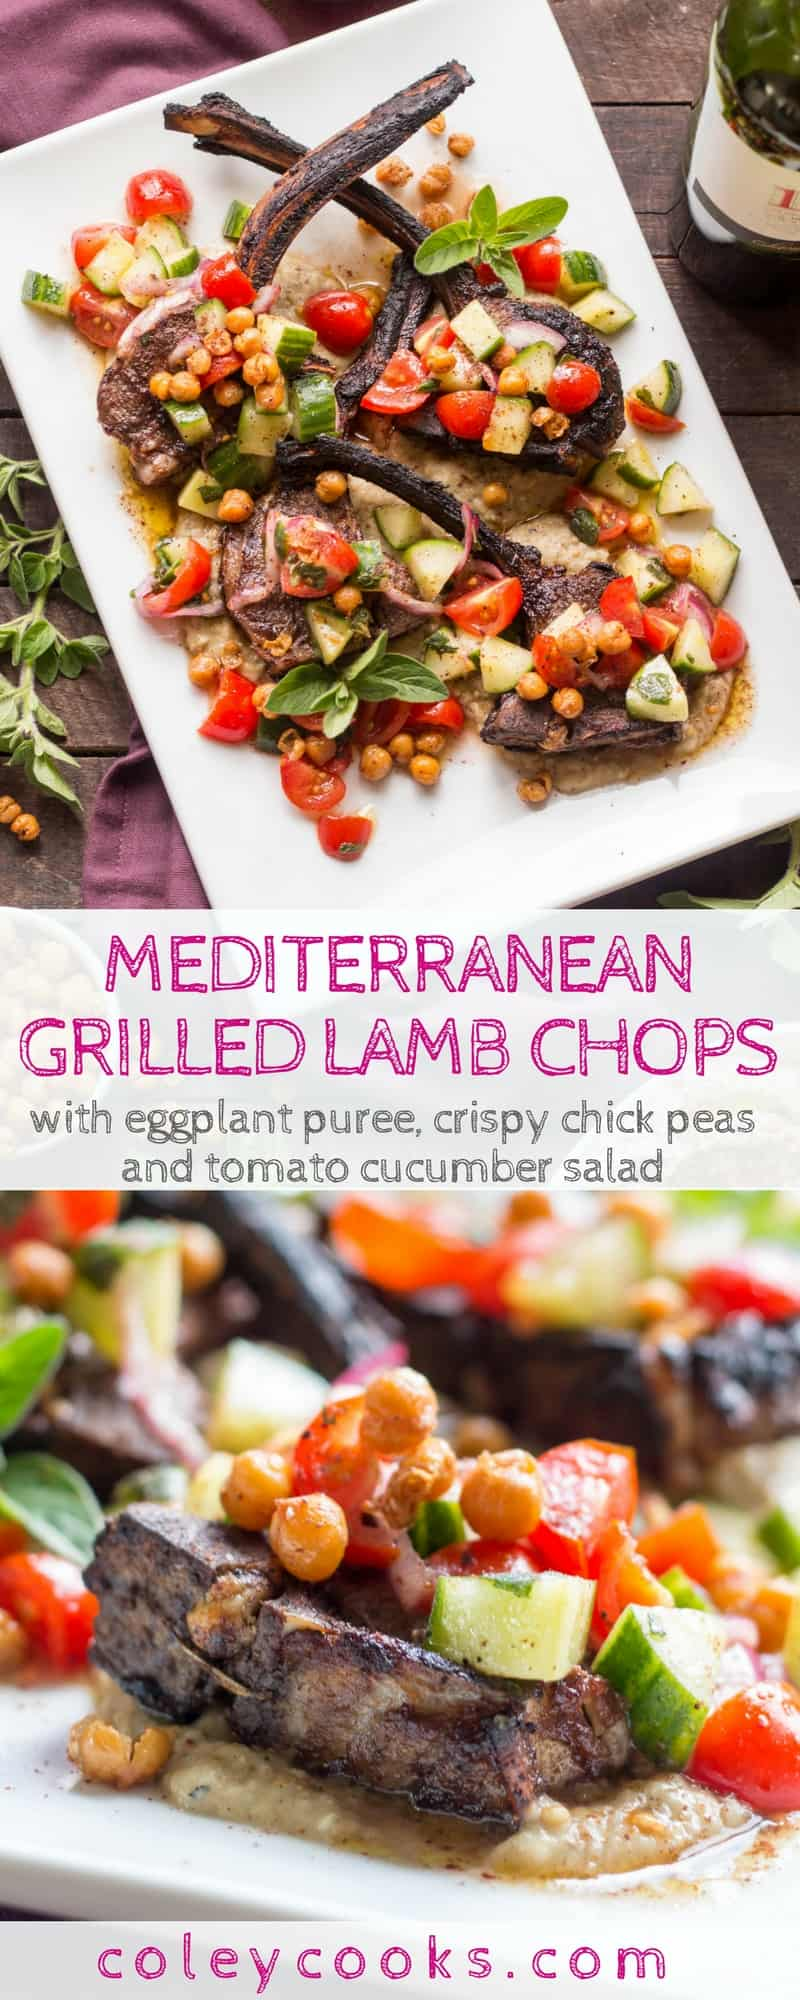 MEDITERRANEAN GRILLED LAMB CHOPS | Easy recipe for grilled lamb chops with Eggplant Puree, Tomatoes, Cucumbers + Crispy Chick Peas. Grilling recipe, easy lamb recipe, summer recipe, healthy recipe, #paleo #glutenfree | ColeyCooks.com